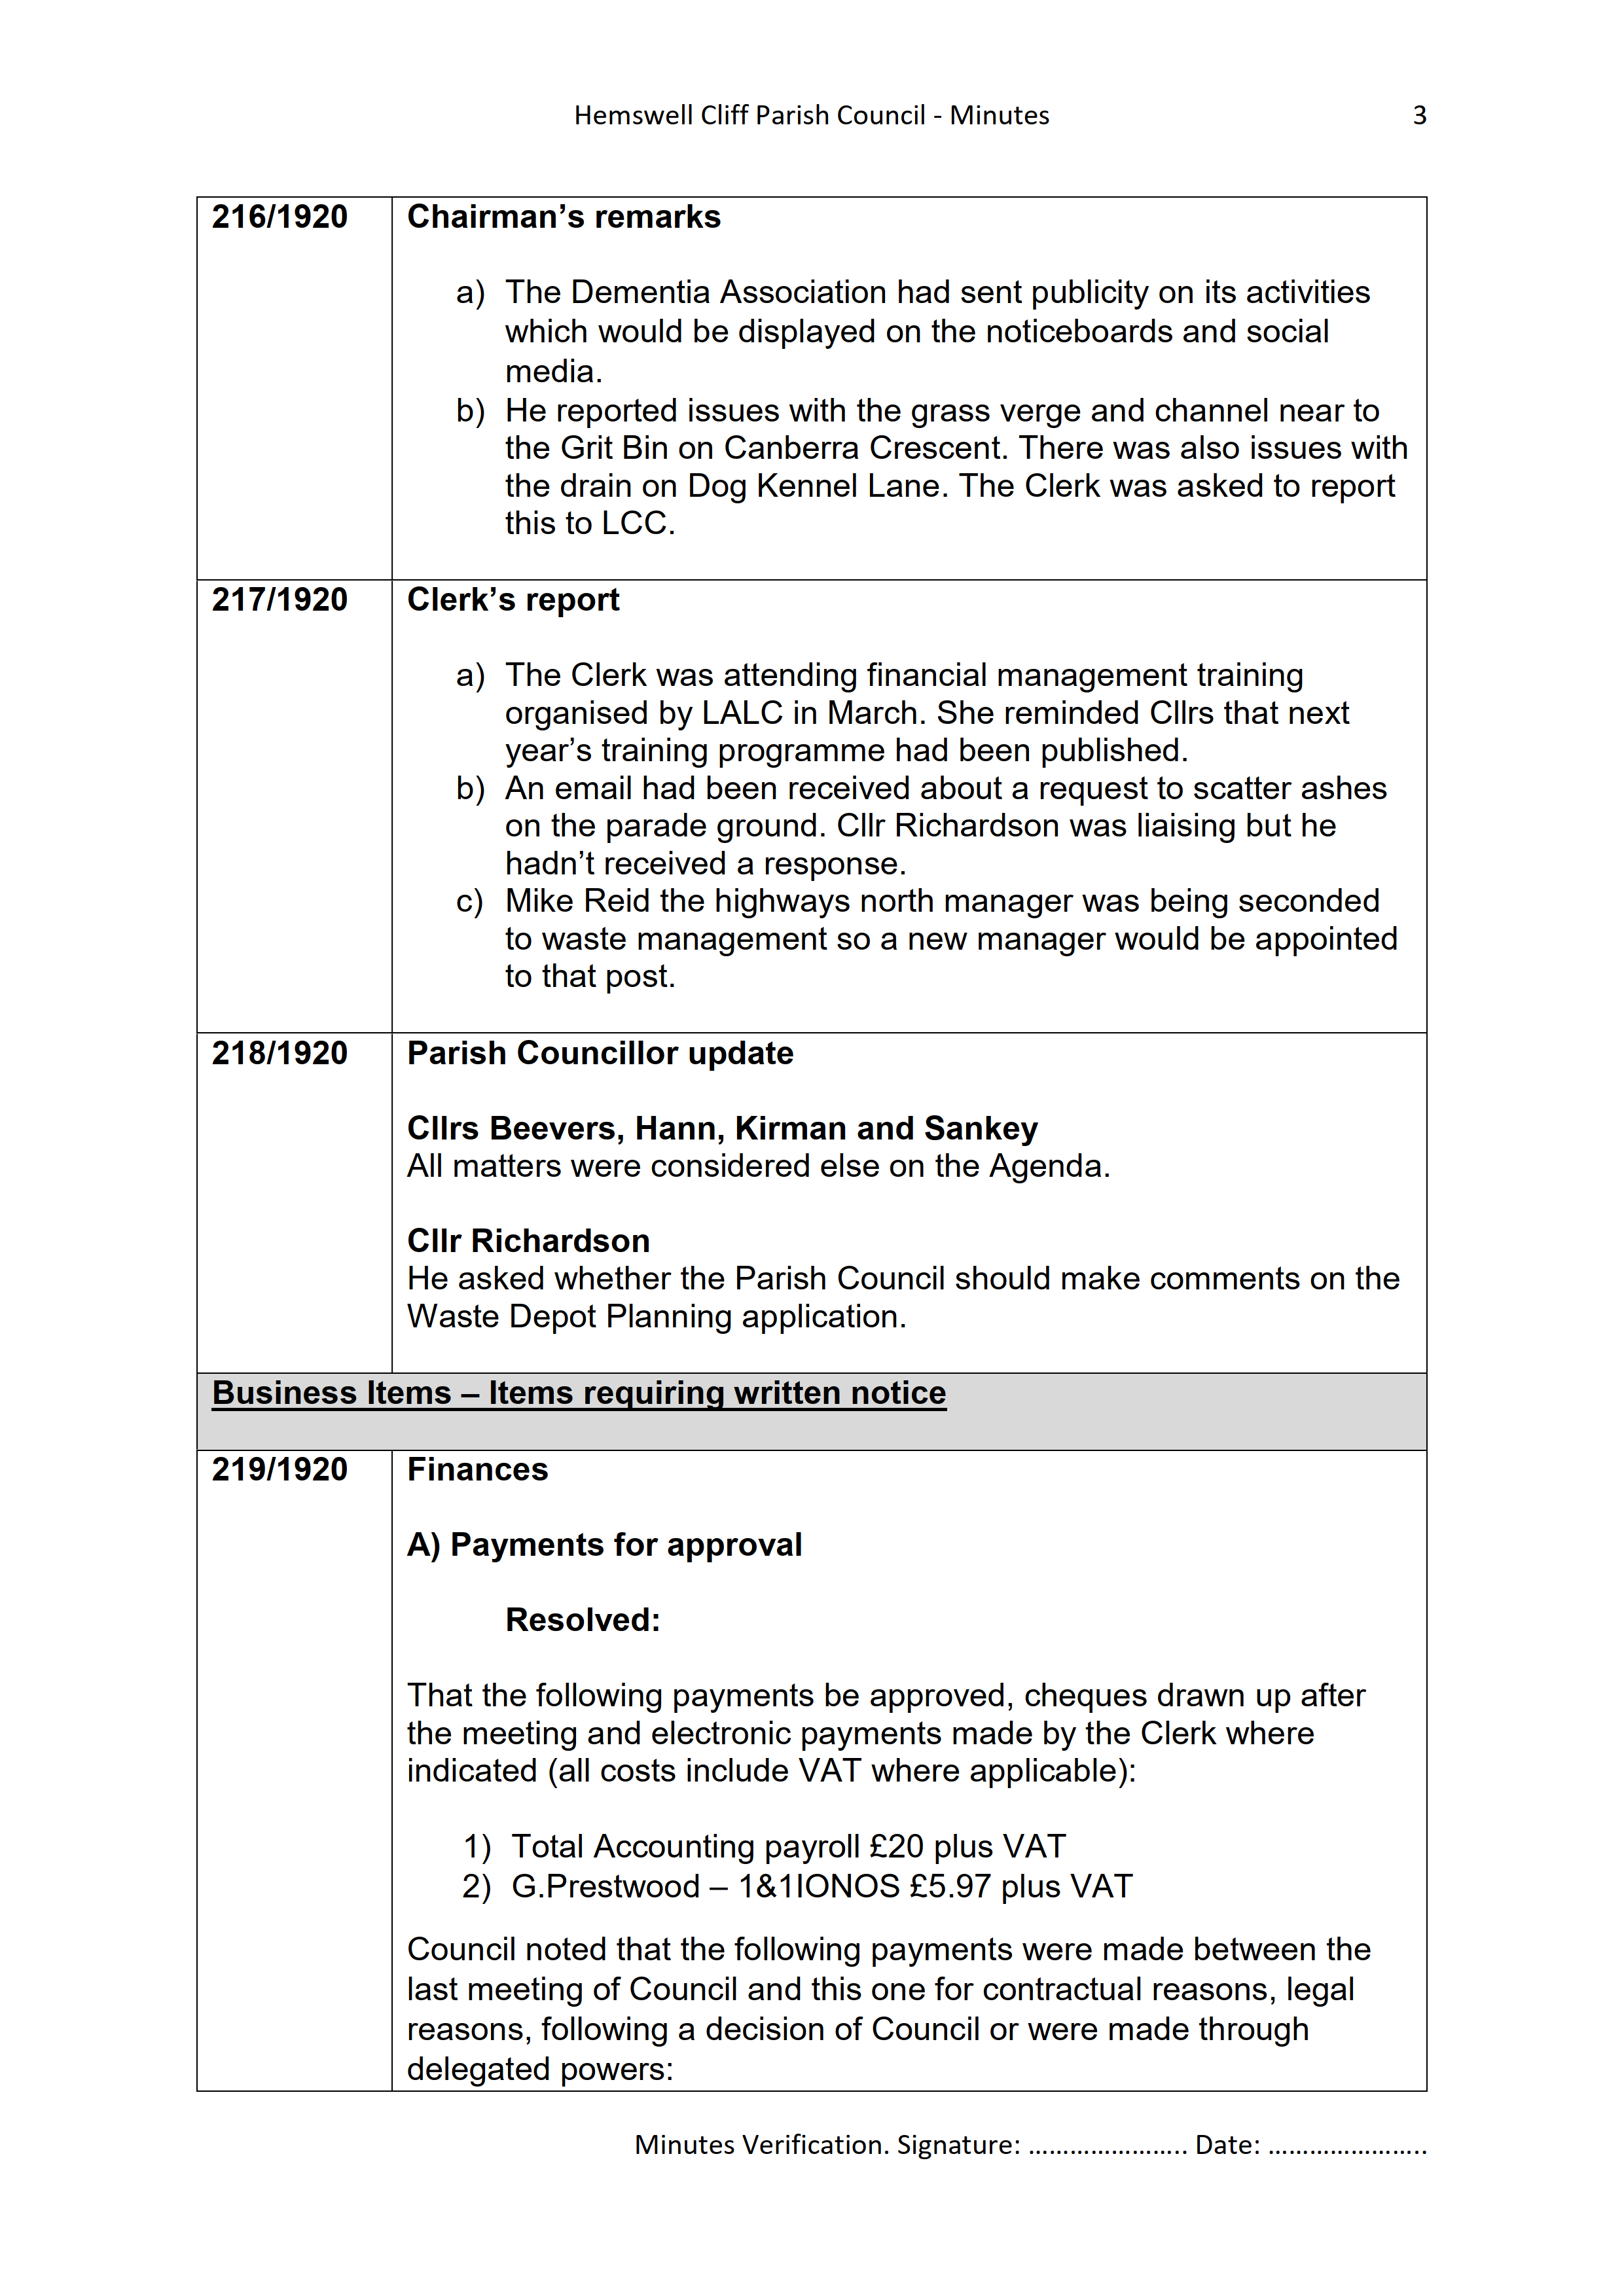 HCPC_Minutes_03-02-203.png